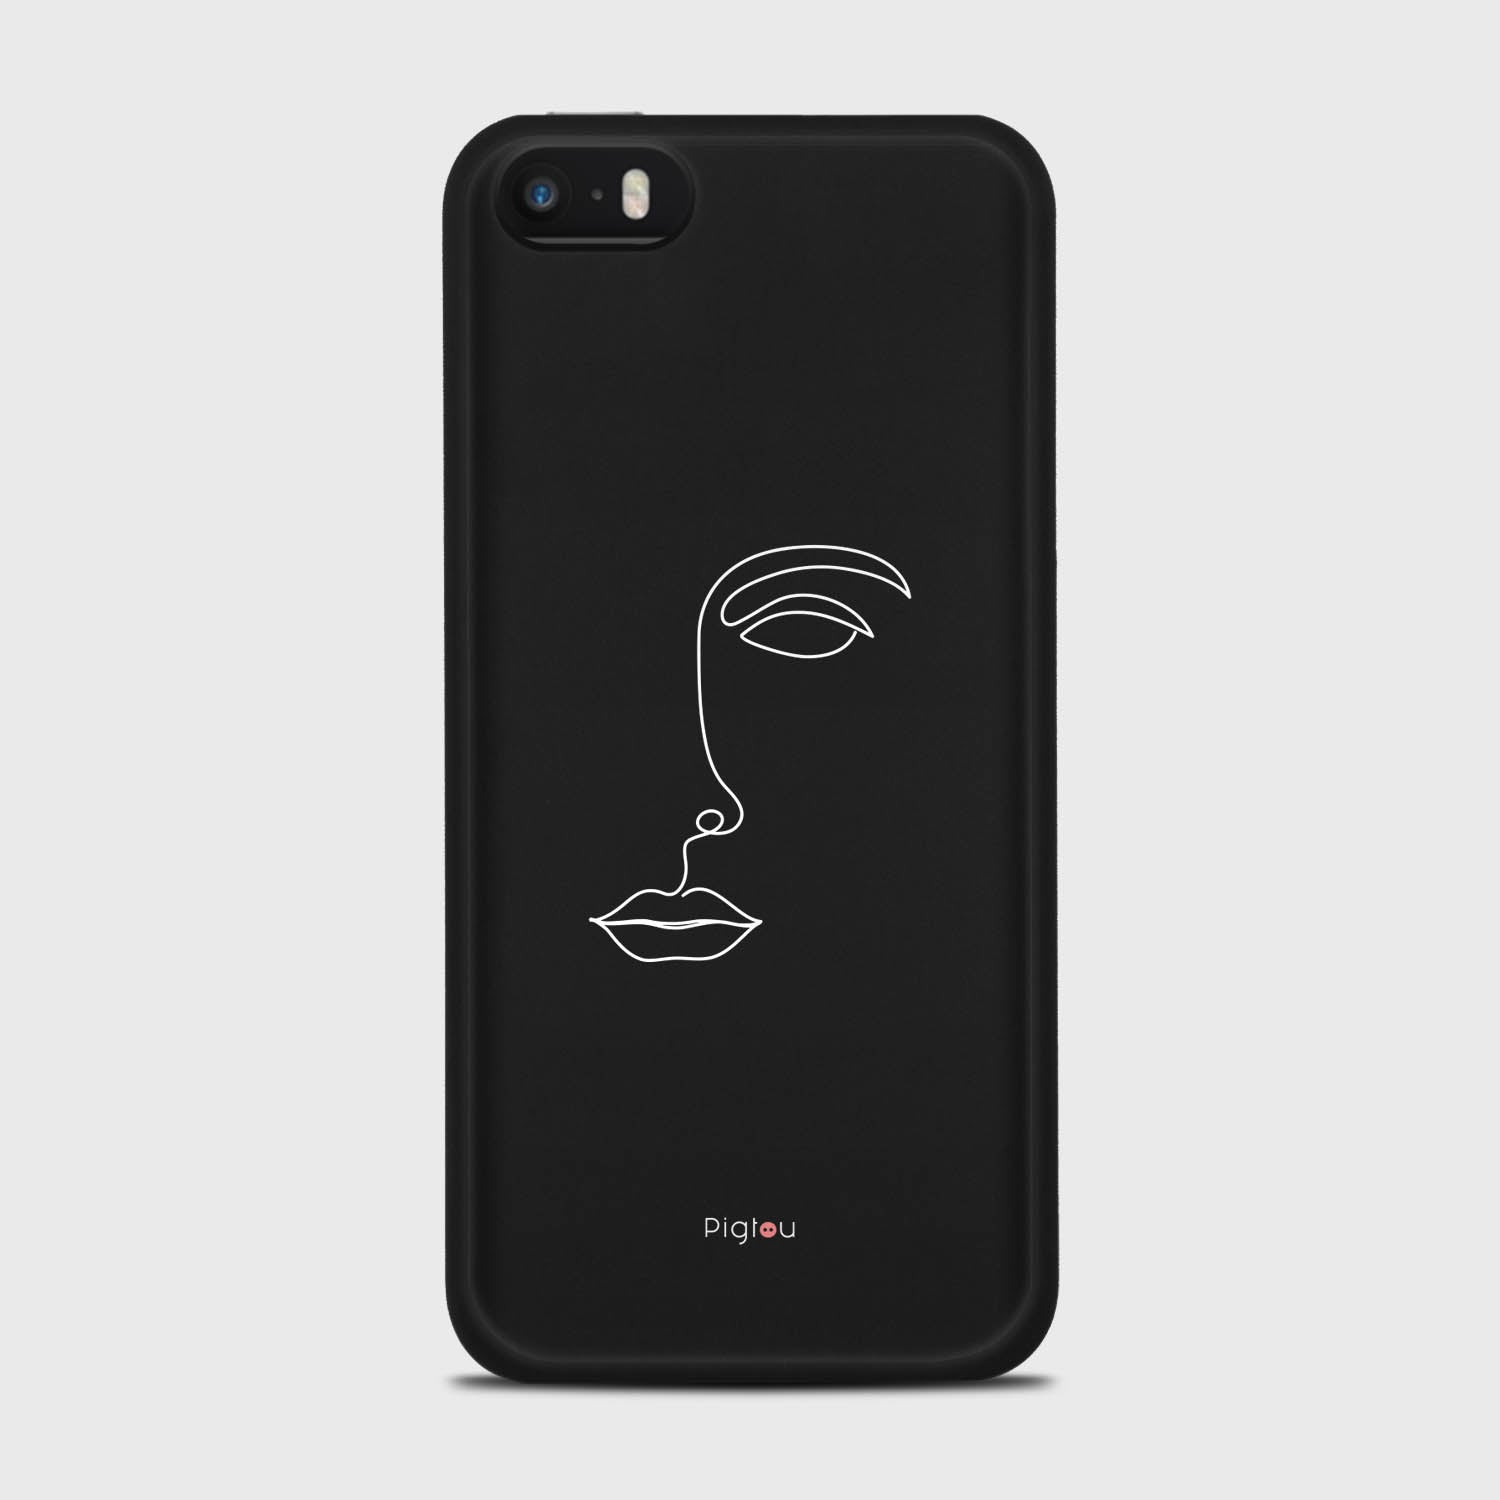 Silhouette De Visage Coque Iphone 5